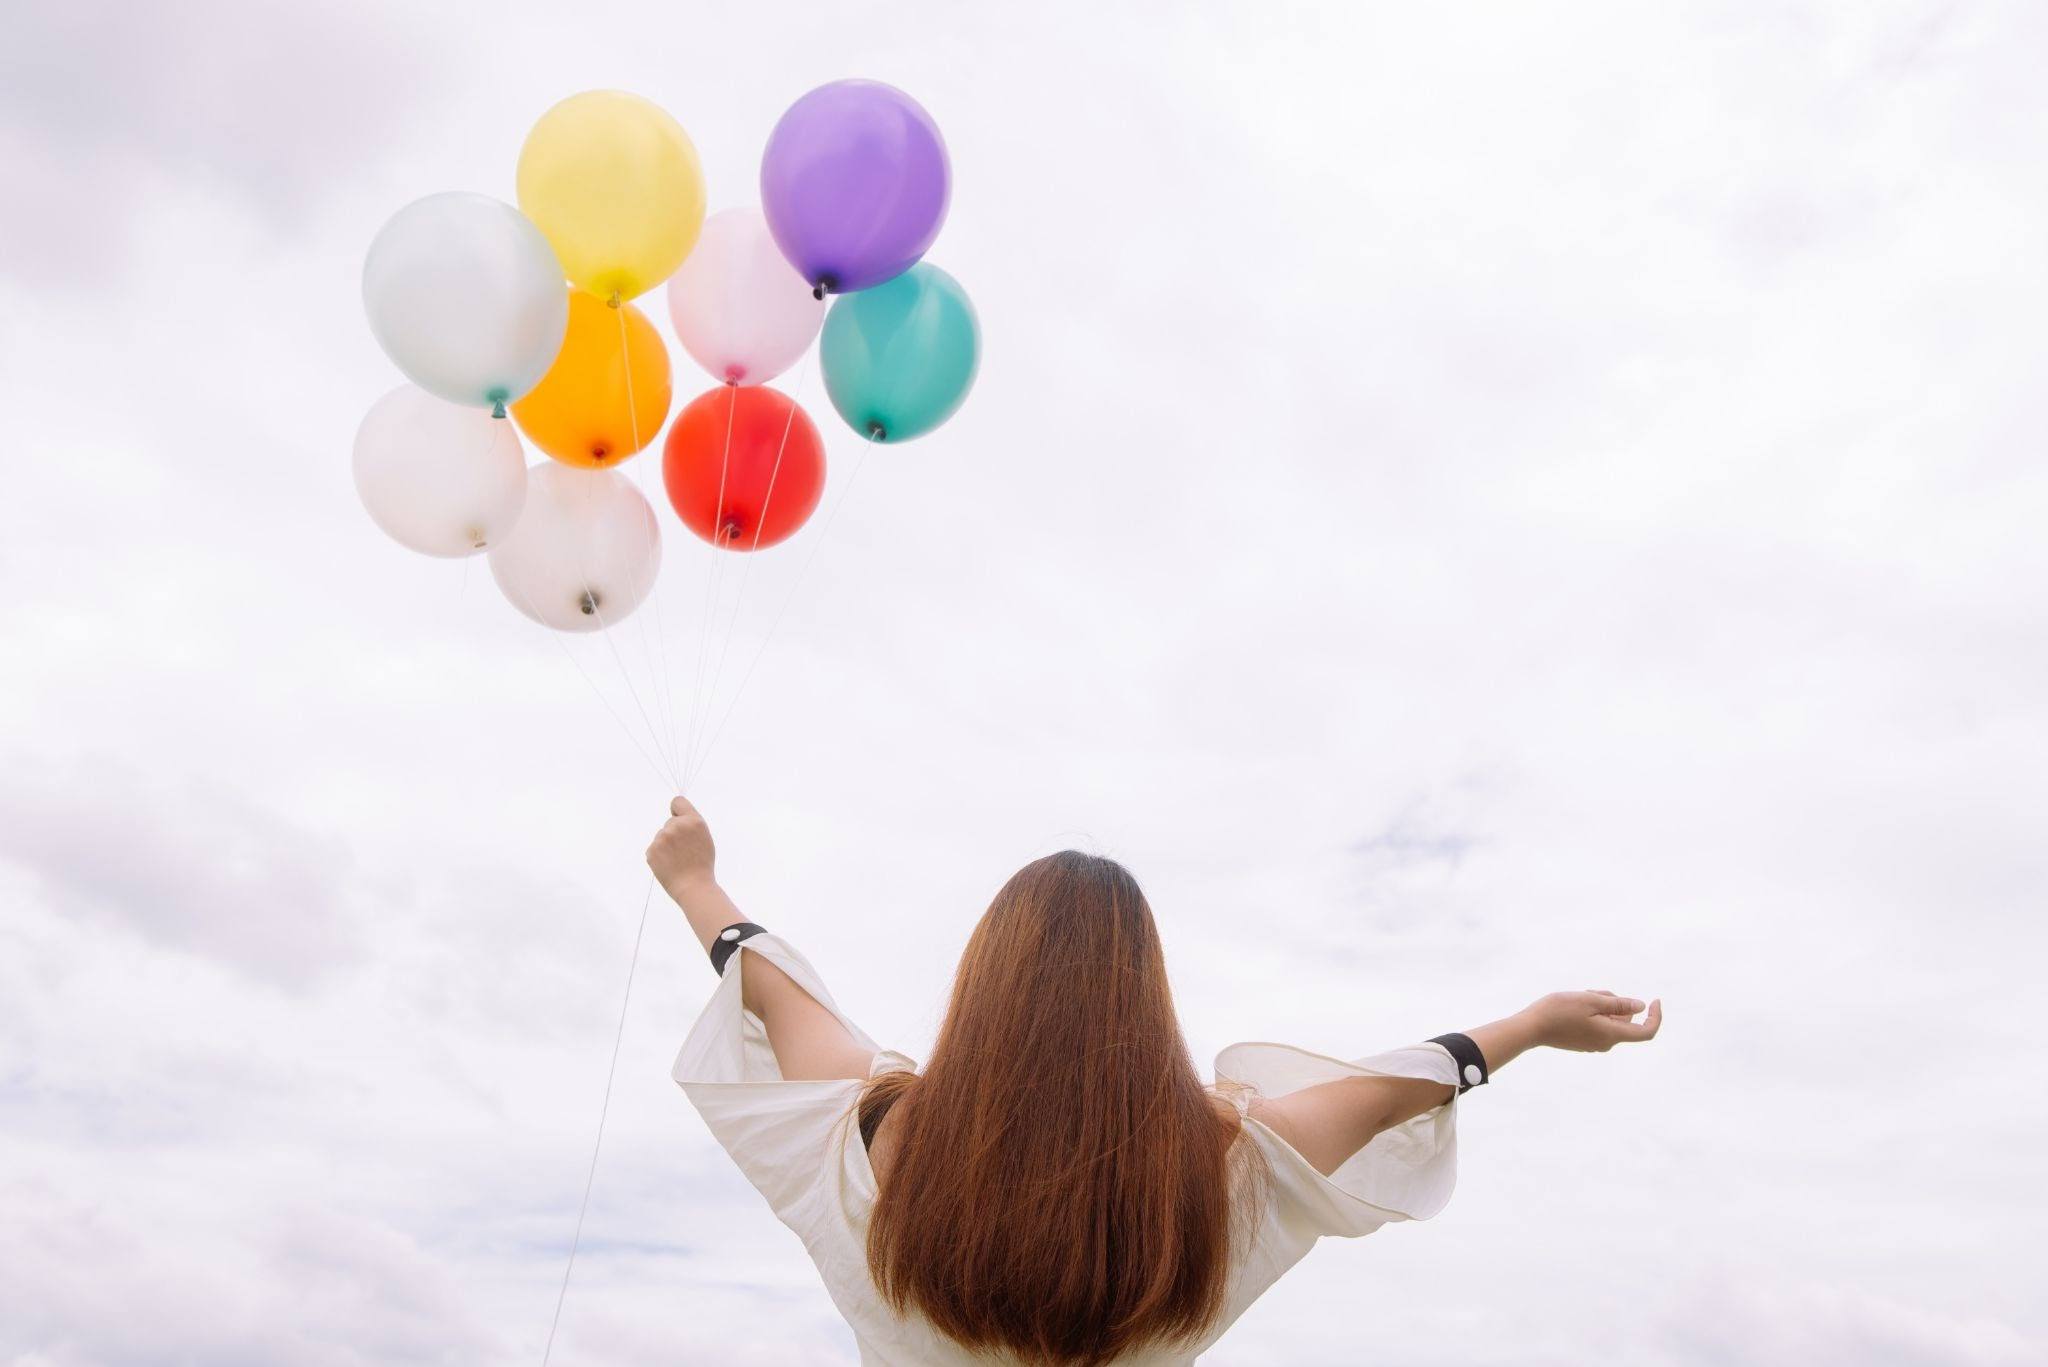 A girl standing outside holding a cluster of balloons.